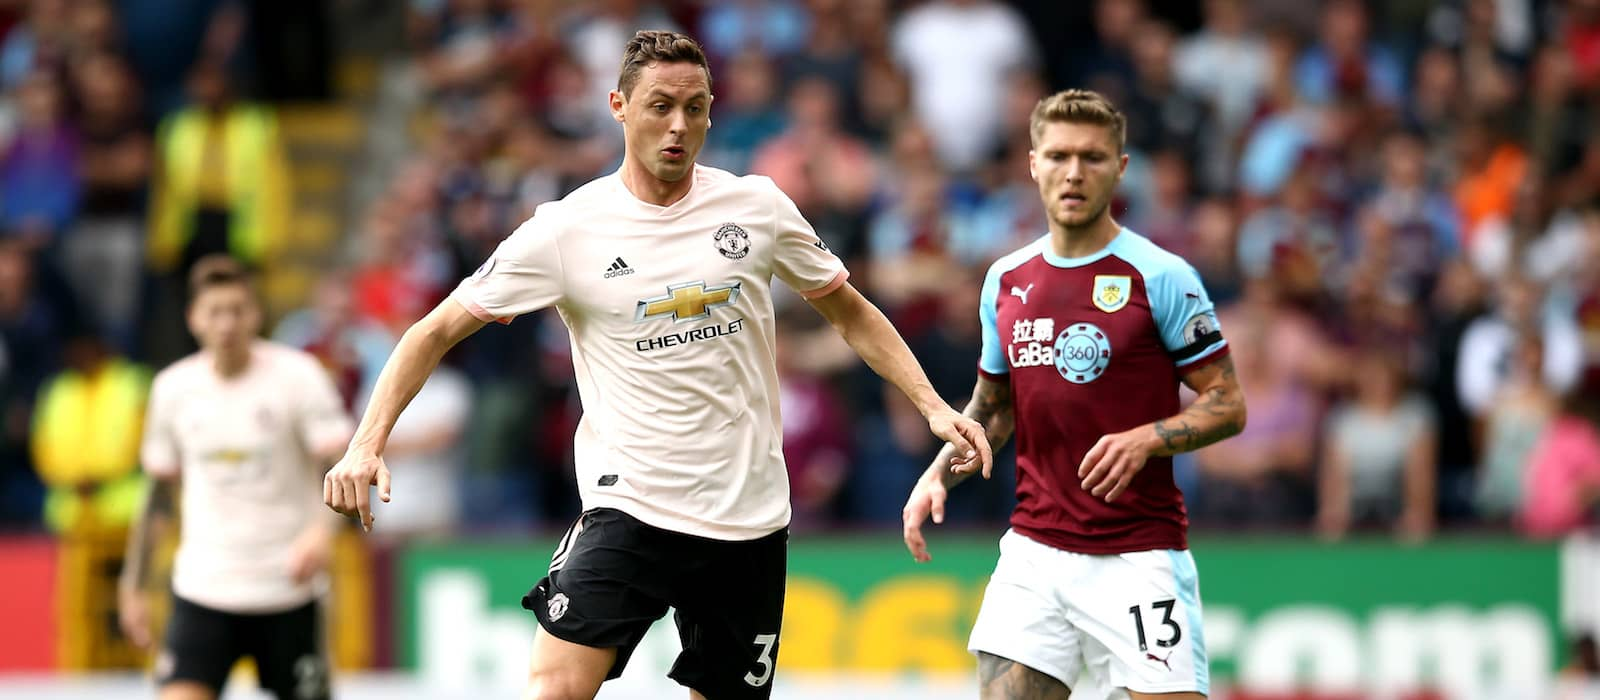 Nemanja Matic facing race against time to be fit for Chelsea on October 20 – report